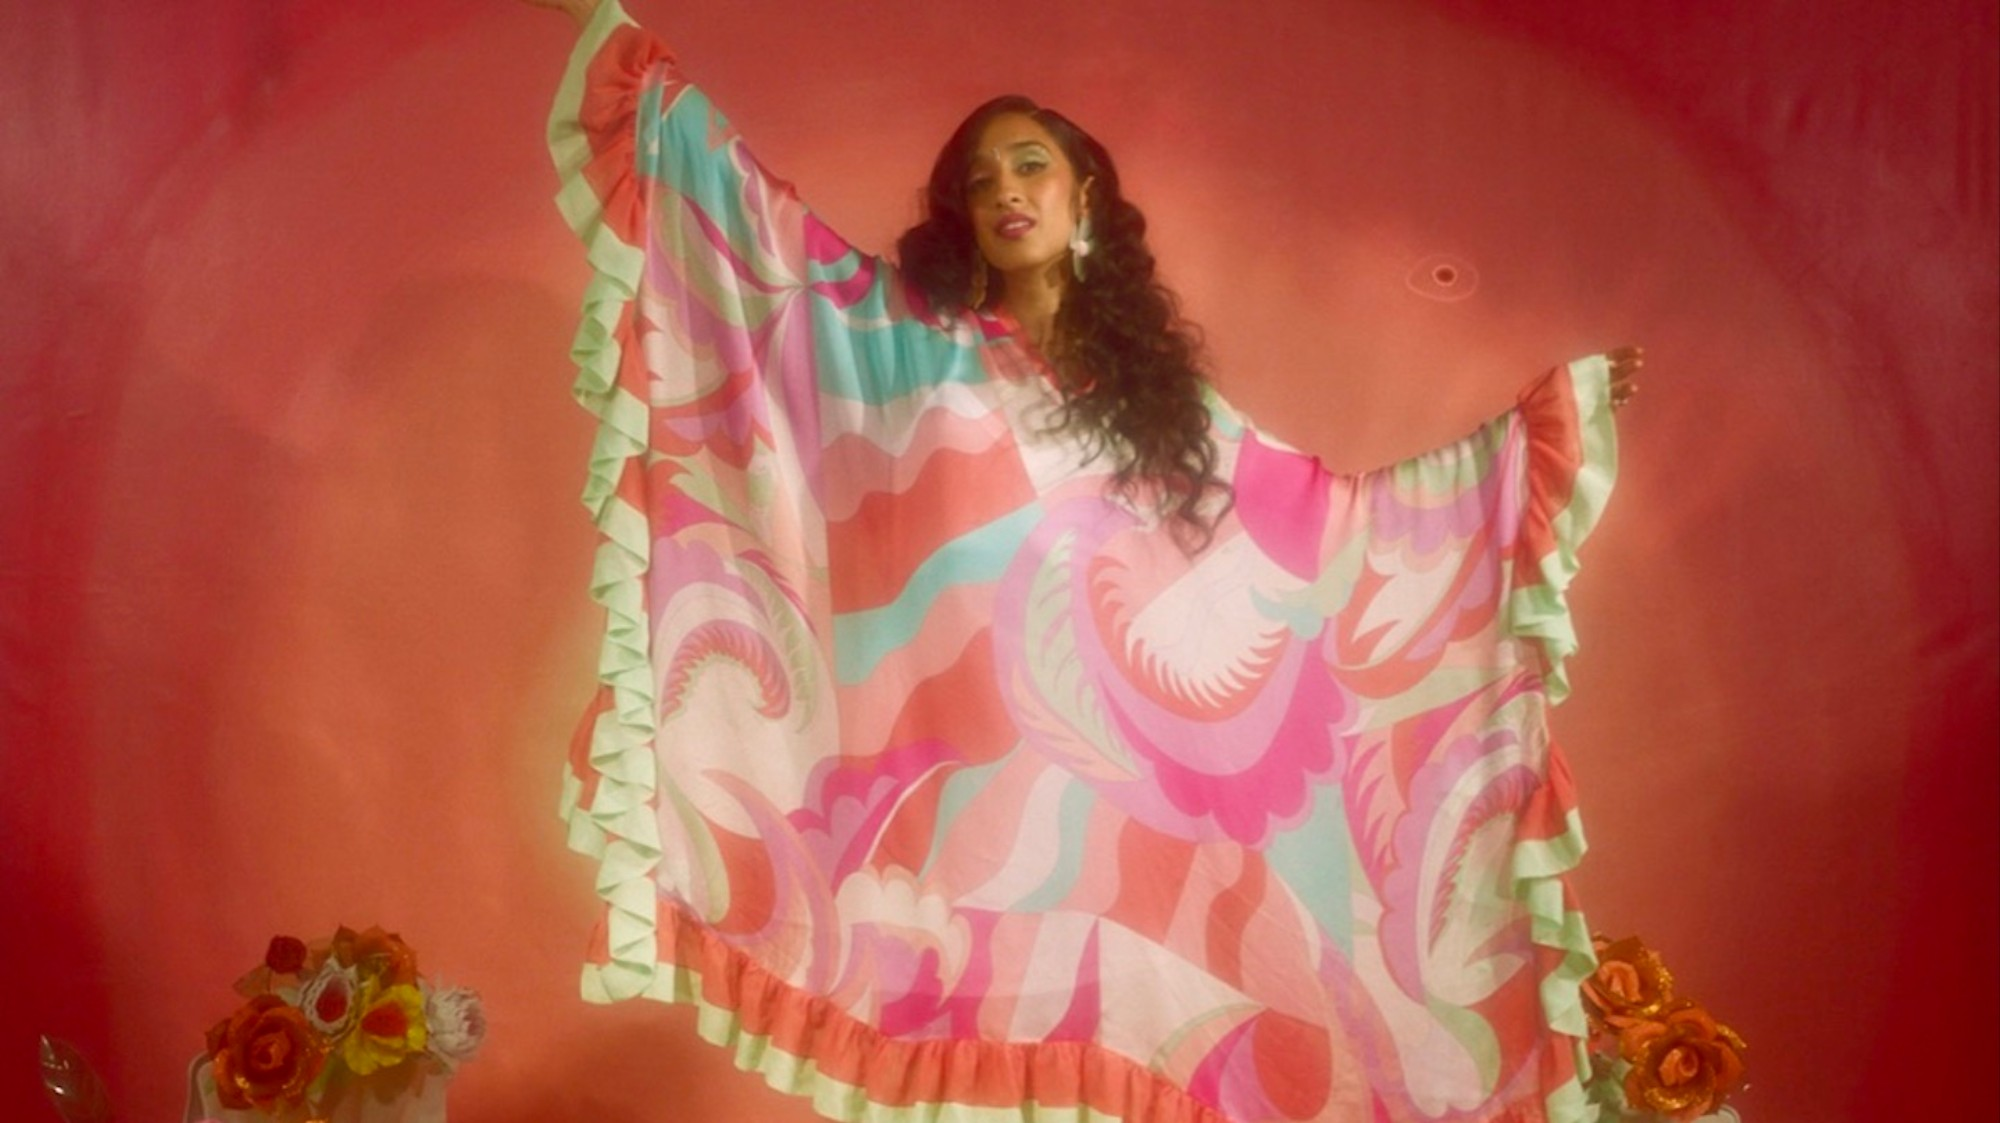 Raveena's Debut Album Is a Dreamy R&B Universe - VICE